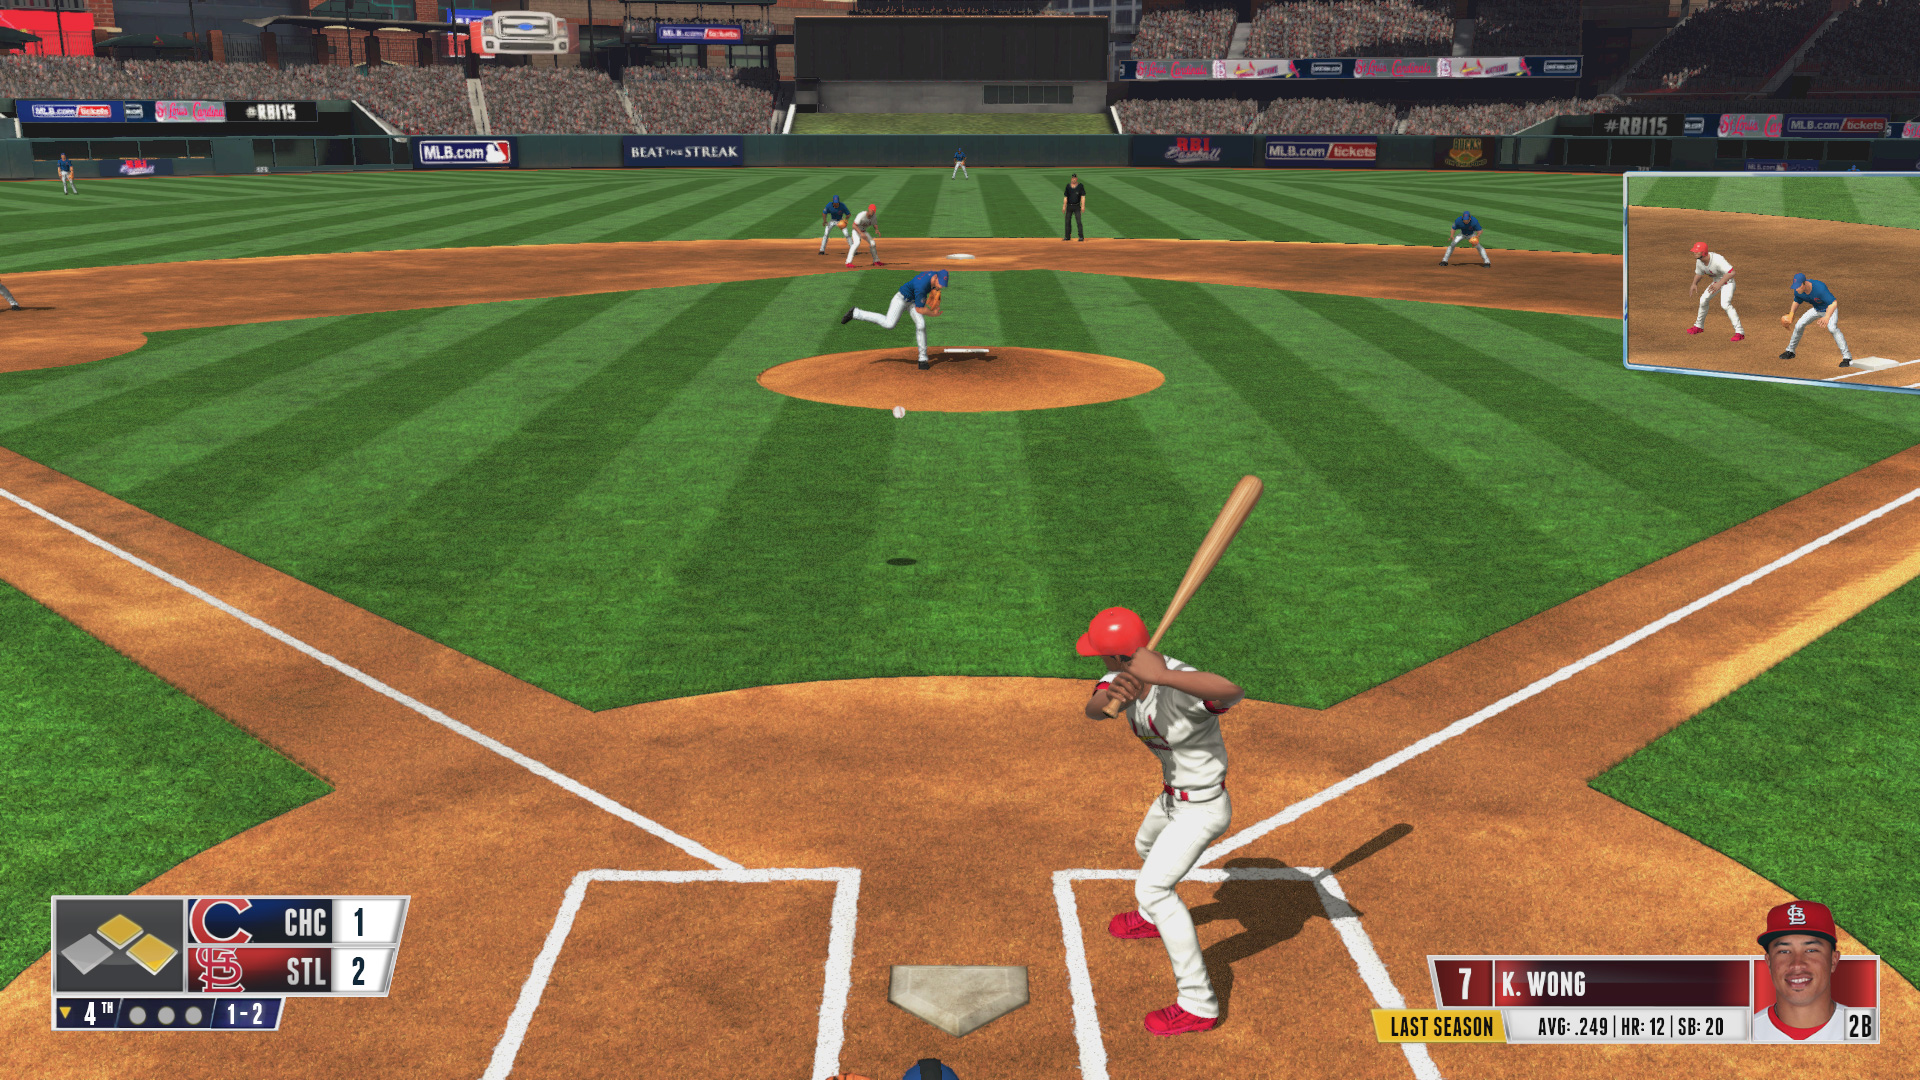 R.B.I. Baseball 15 launching March 31 on PS4 and Xbox One (update)